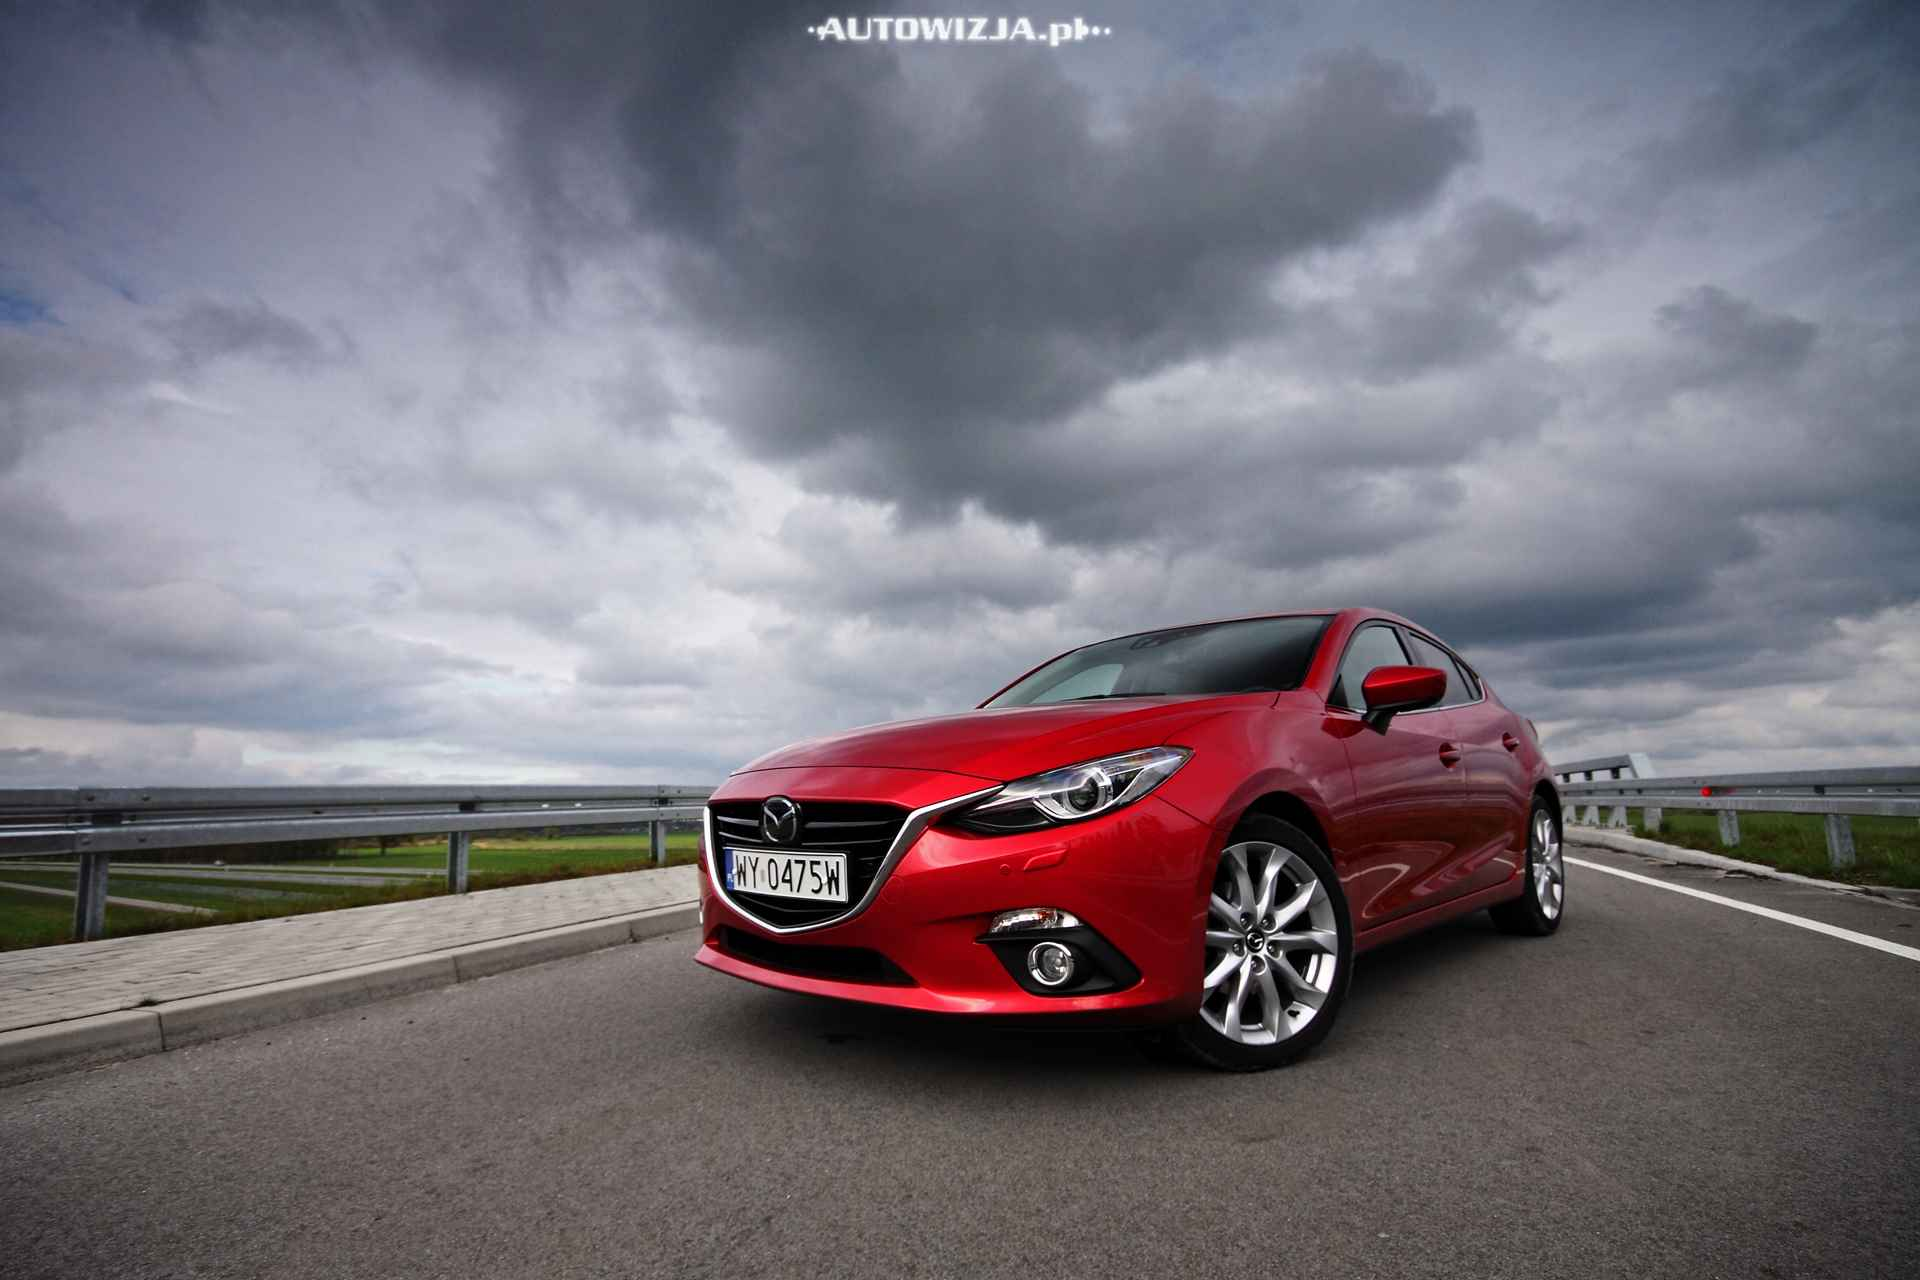 mazda 3 skyactiv g 2 0 165km test. Black Bedroom Furniture Sets. Home Design Ideas